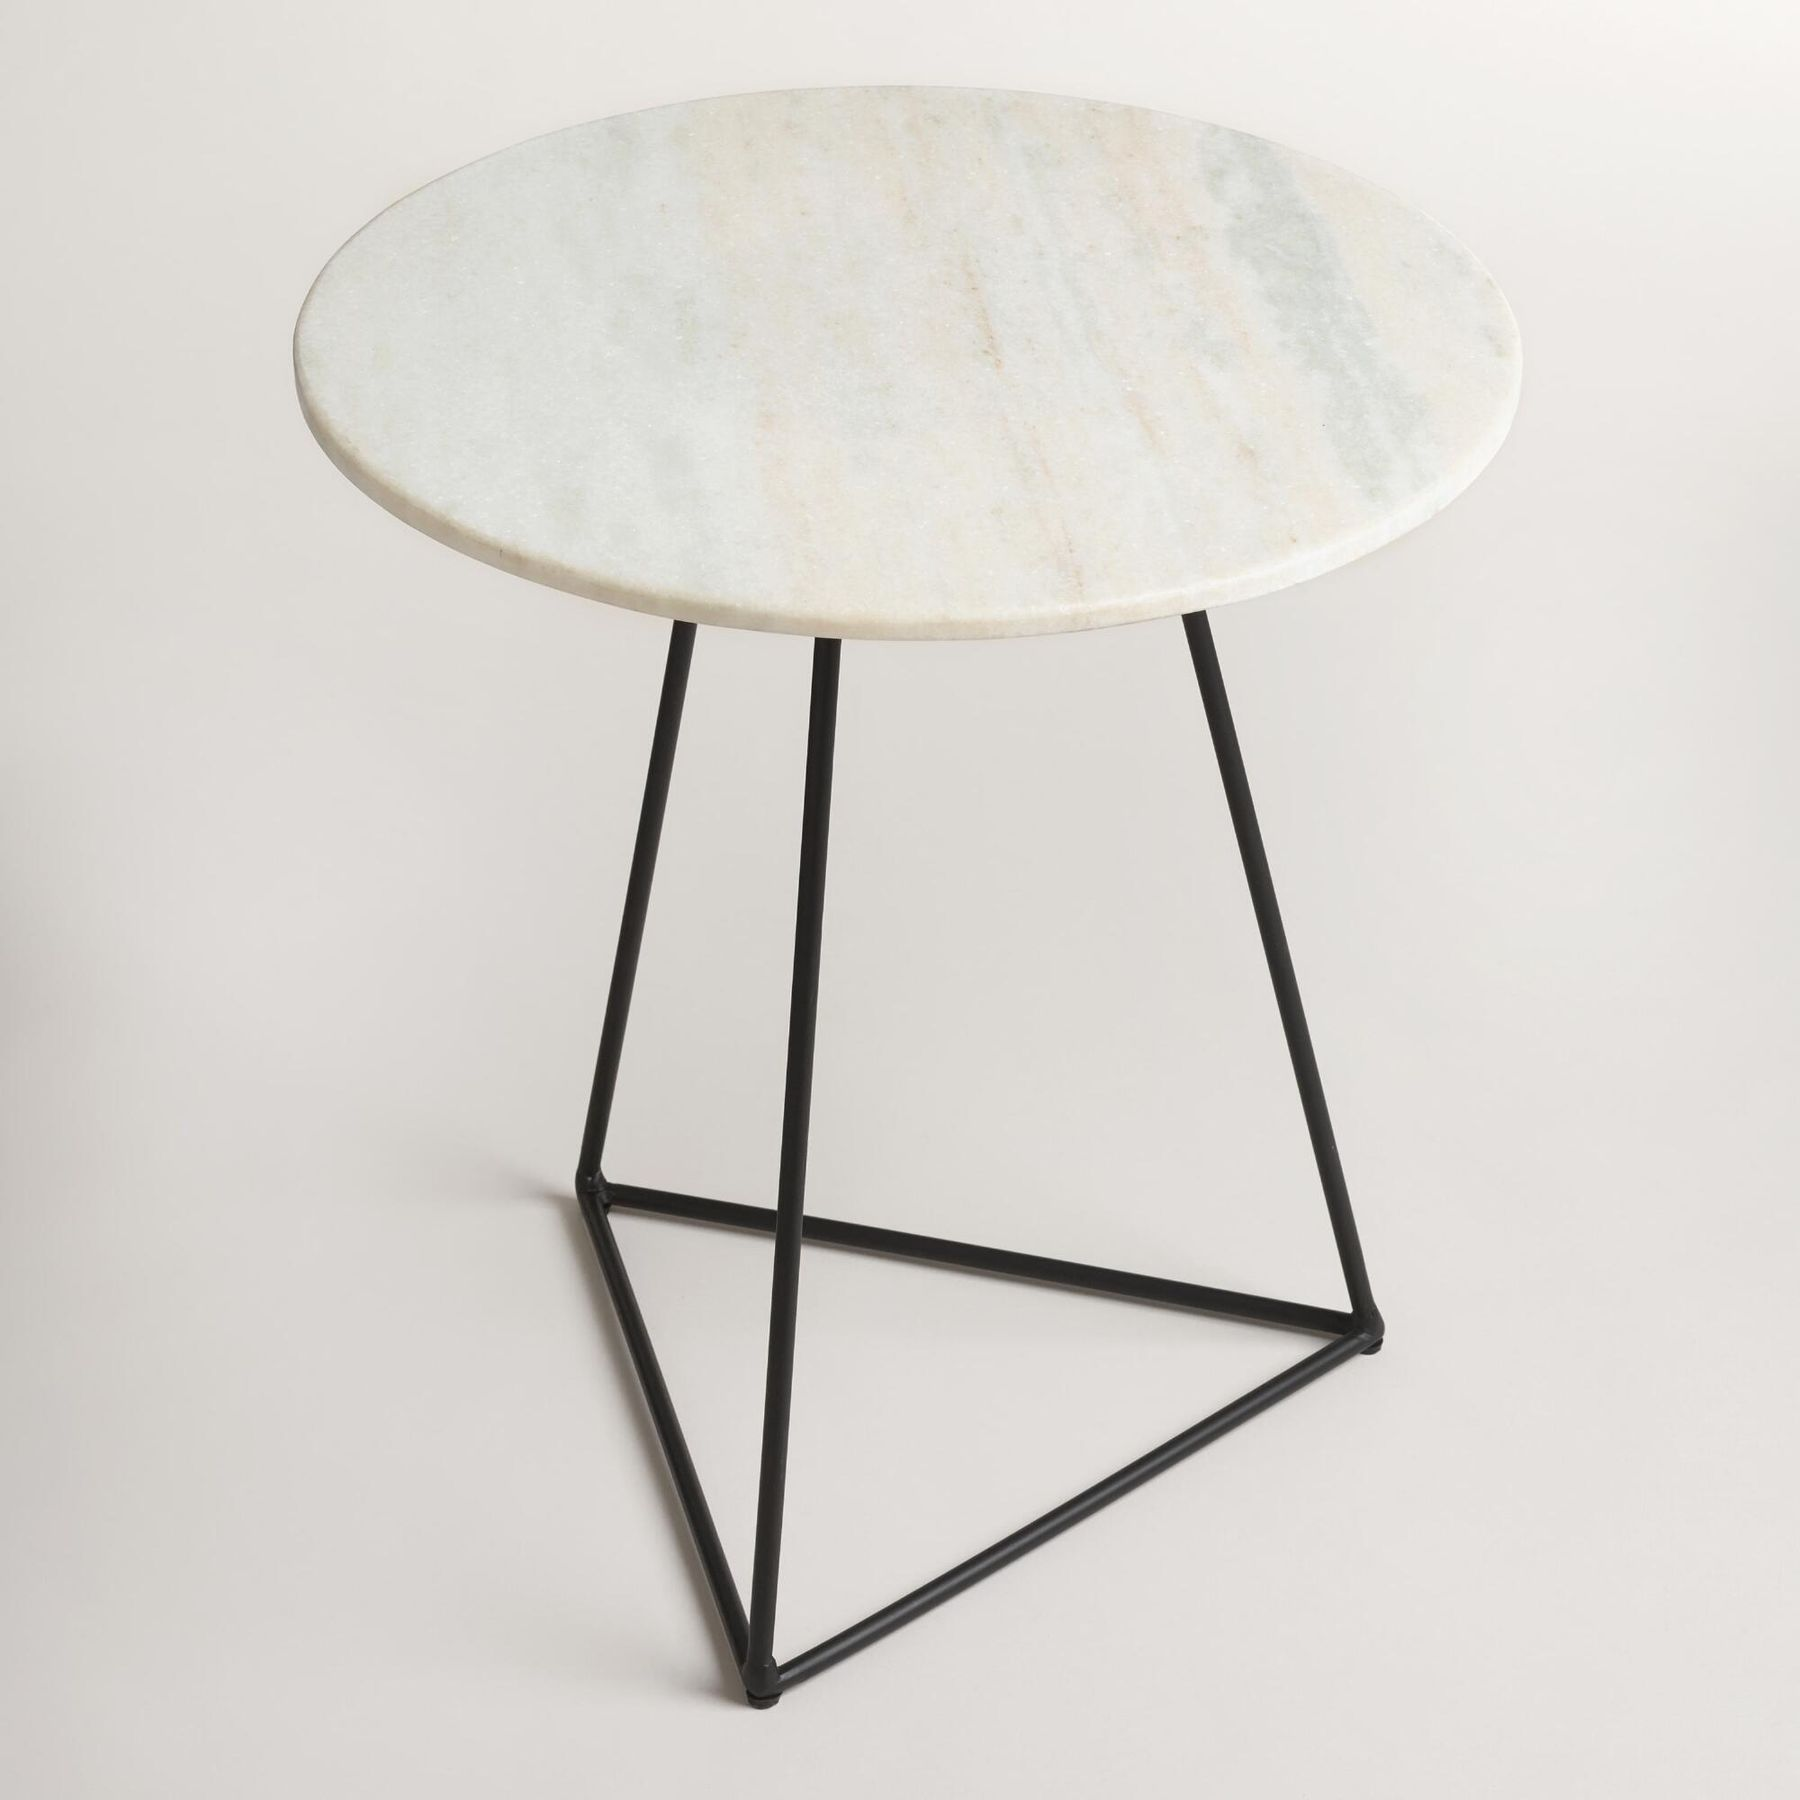 stylish side tables under things for home table living small marble top accent with round white and black steel base ethan allen used furniture coffee end lucite lamp decorative